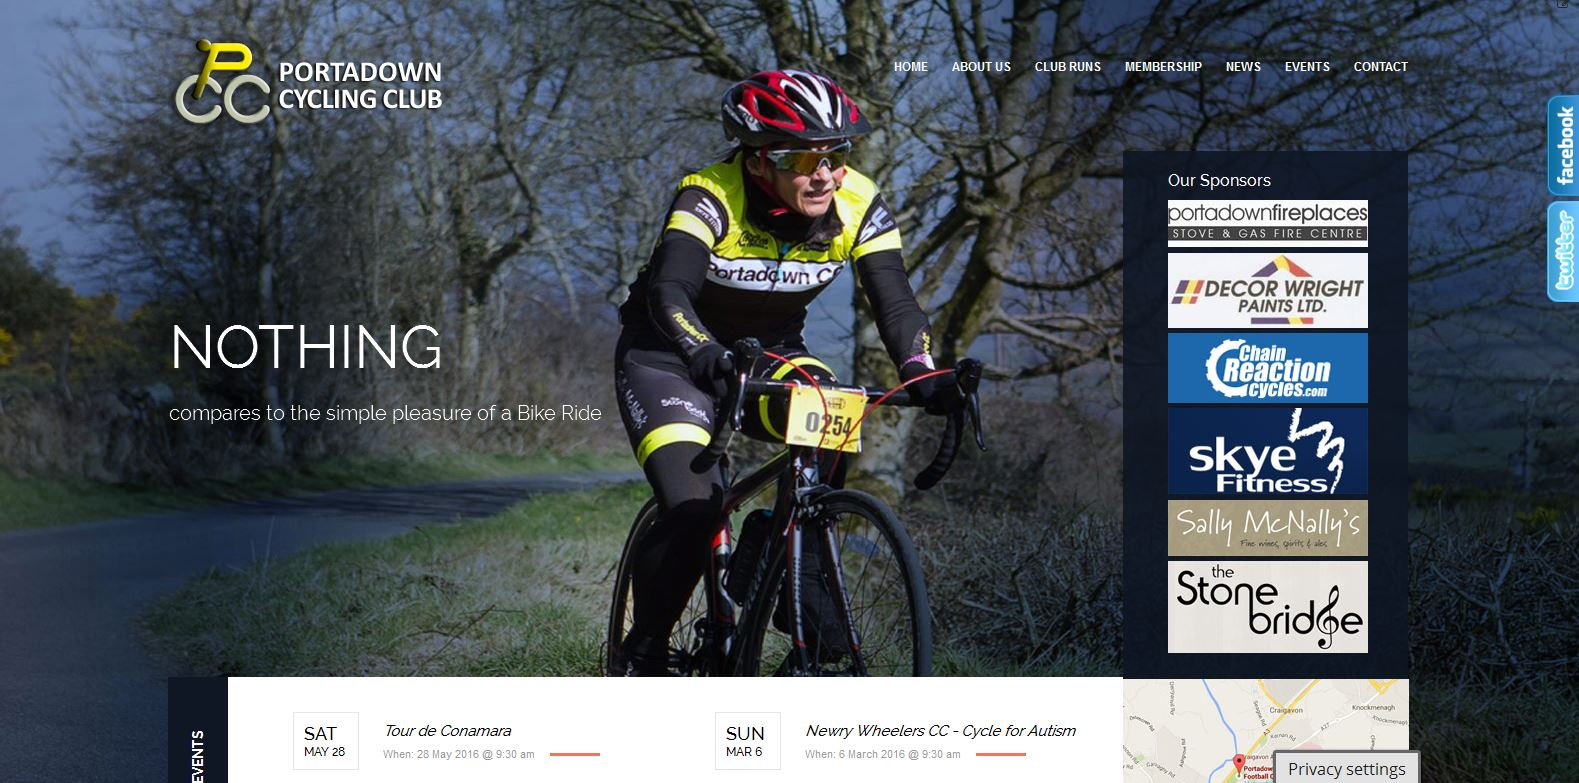 Portadown Cycling Club Home Page